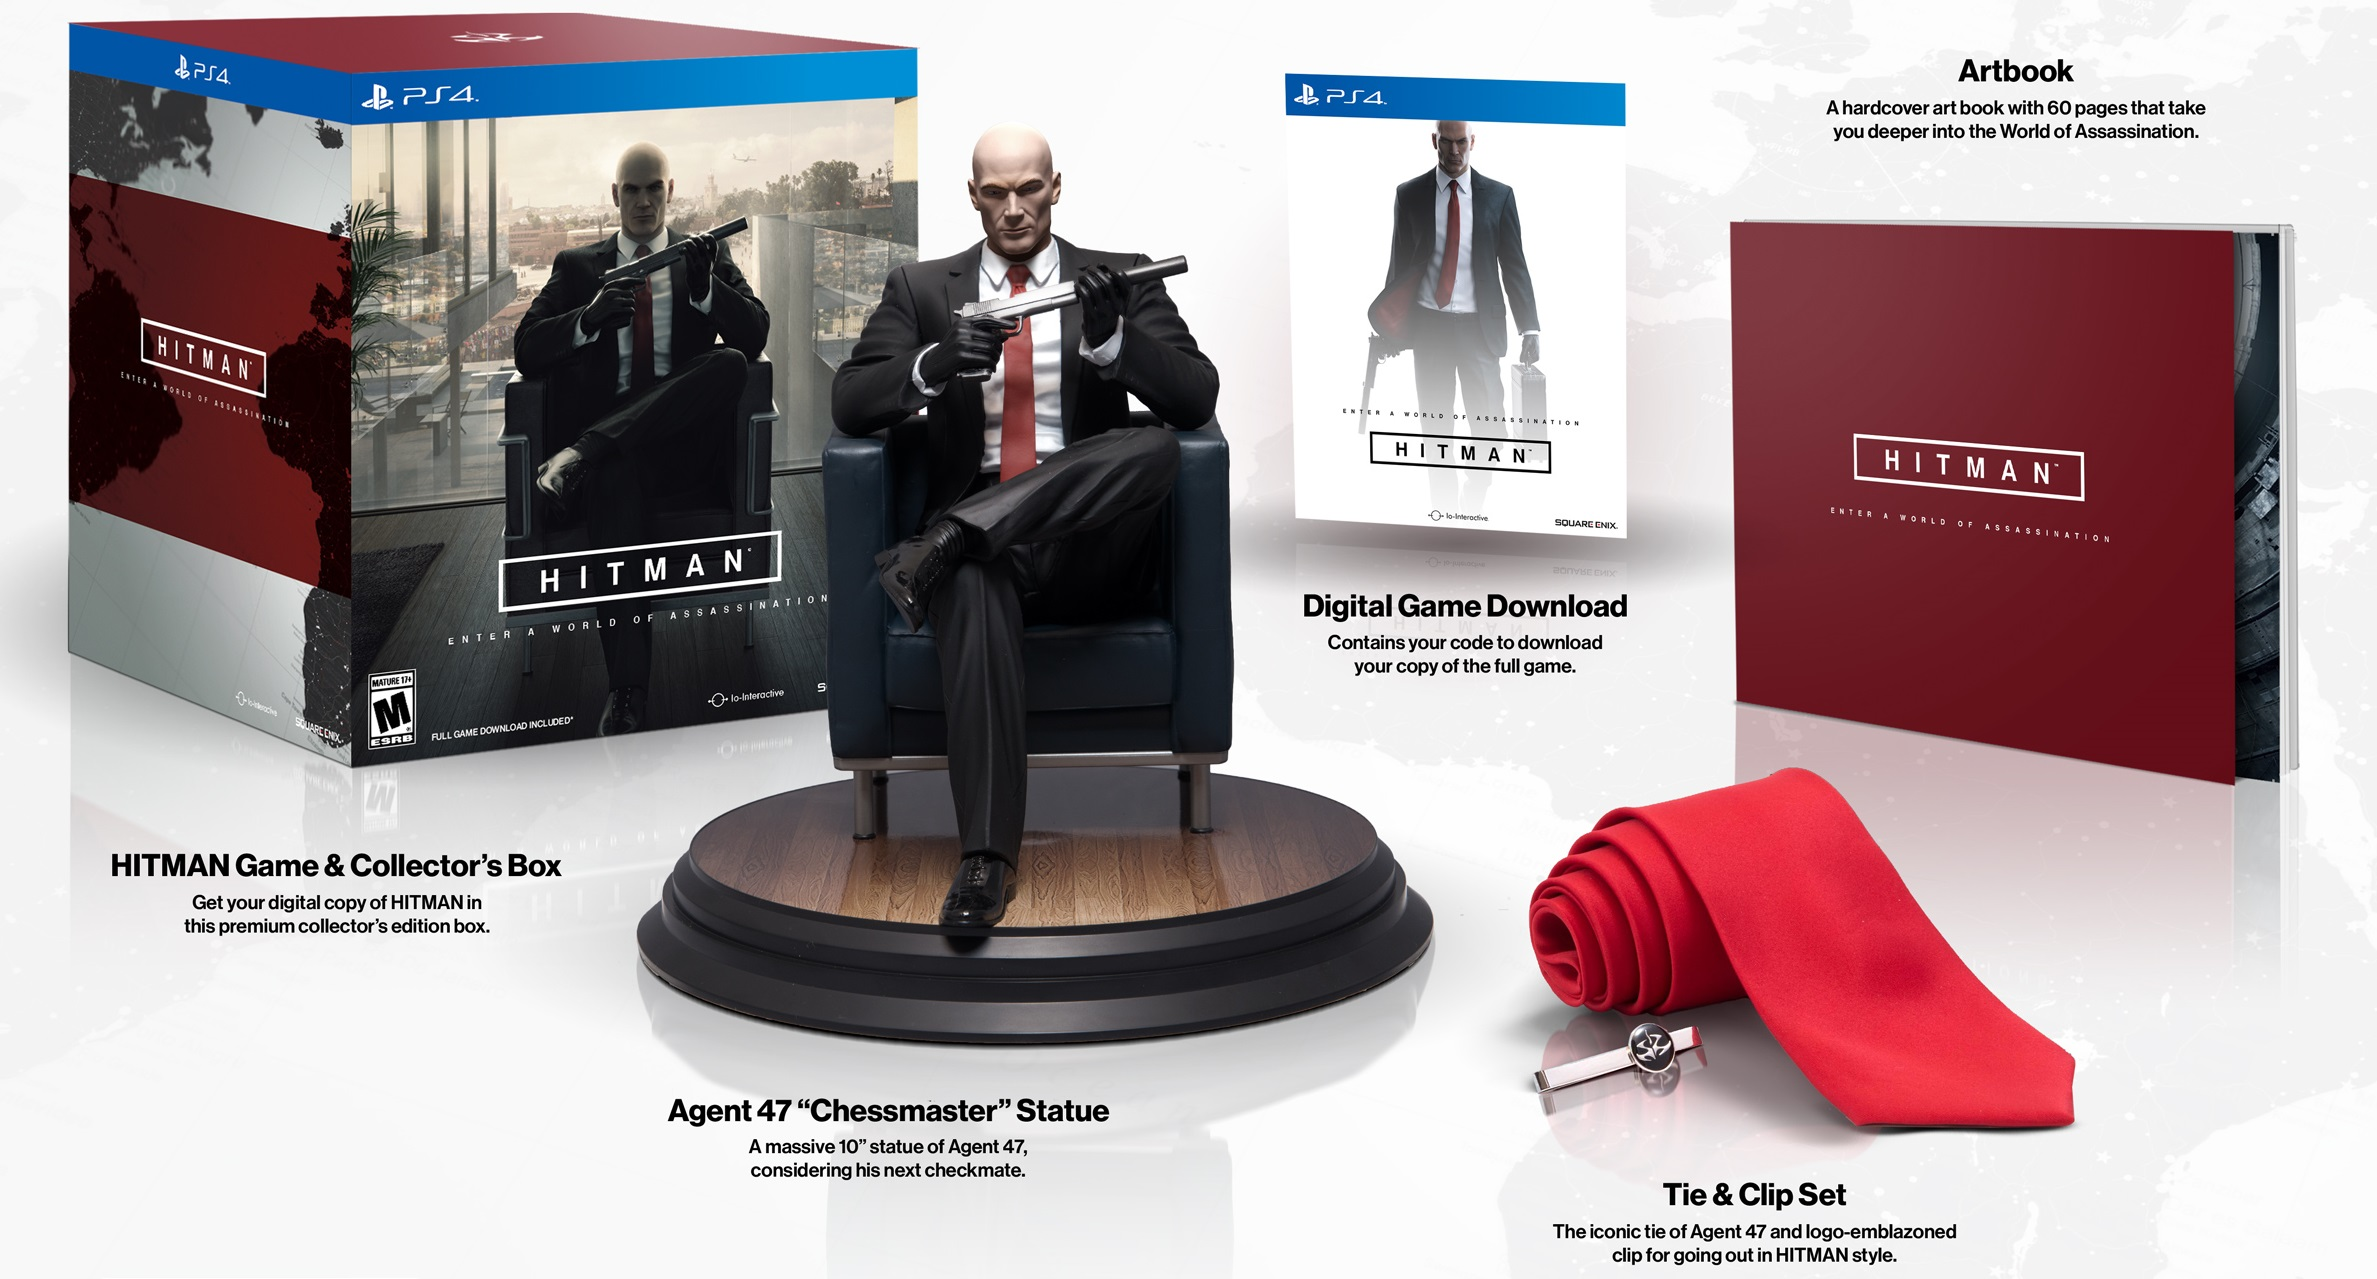 hitman sortie pisodique et version collector se d voilent sur pc ps4 et xbox one. Black Bedroom Furniture Sets. Home Design Ideas